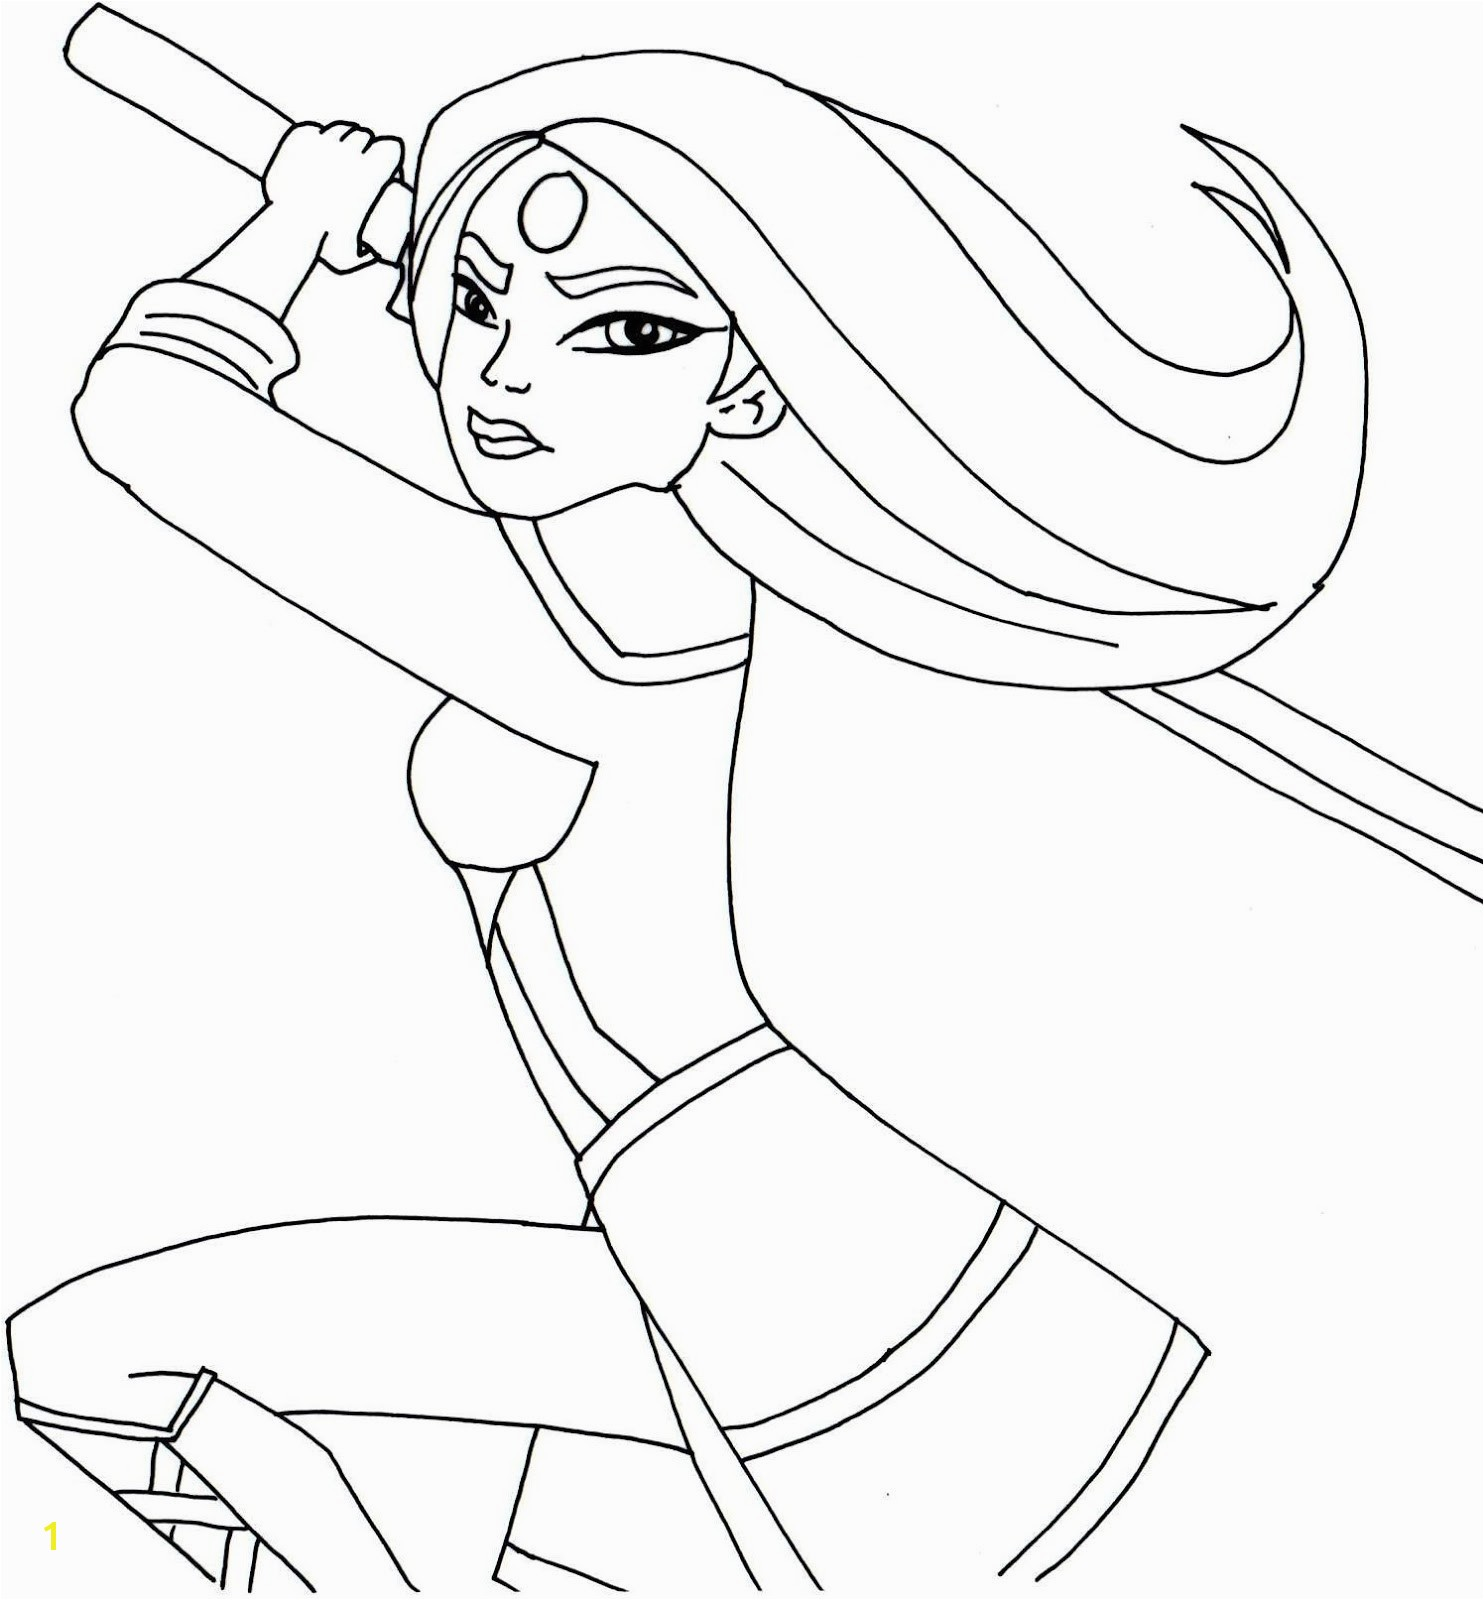 Female Superhero Coloring Pages Female Superhero Coloring Pages Luxury Coloring Pages for Girls